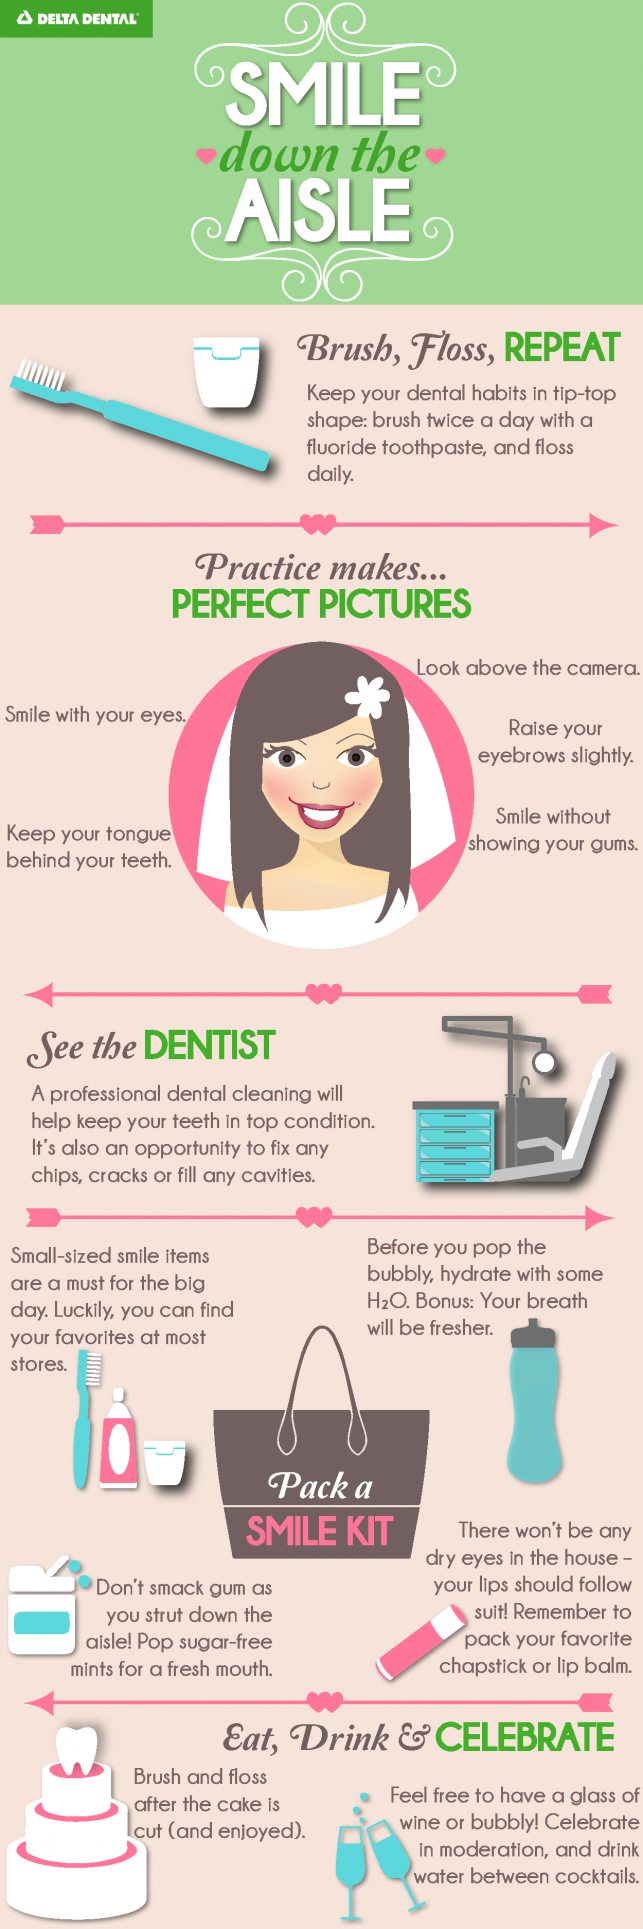 Wedding Season Infographic Delta Dental of Colorado